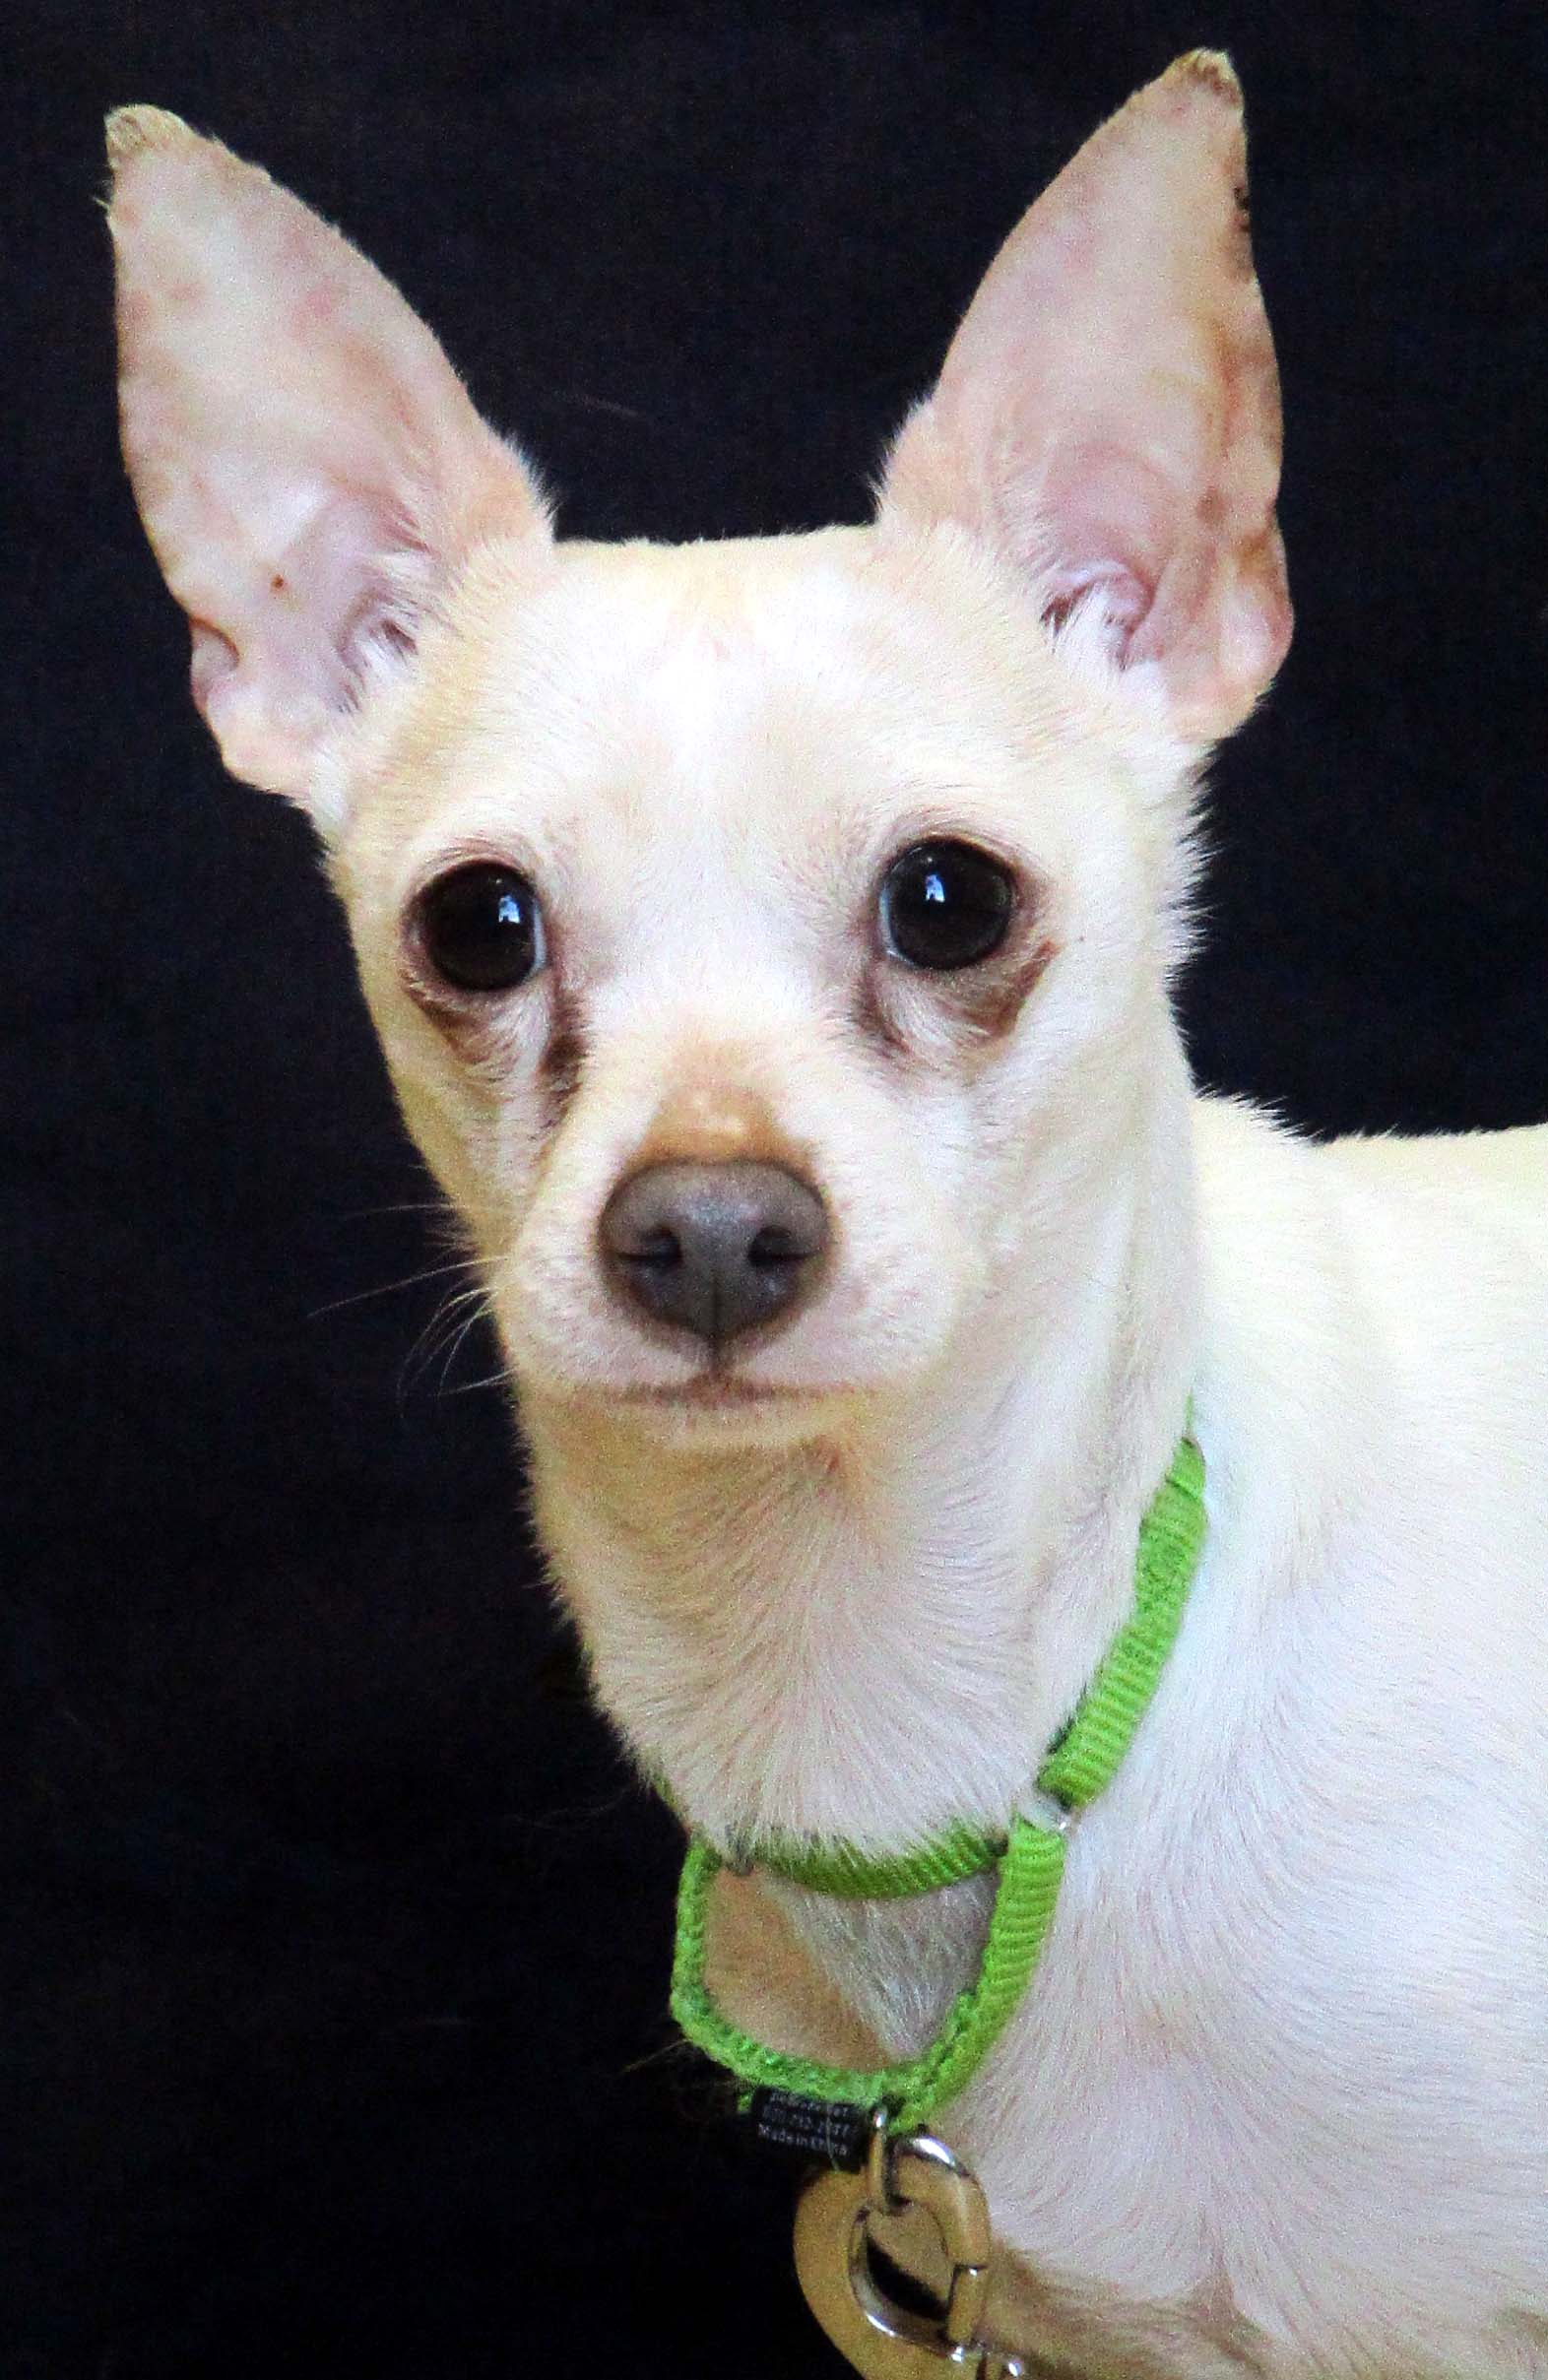 Mr. Bigg is a 6 year old Chihuahua. He can be scared of new people initially but once he has bonded his personality shines. He does well with other animals unless they rush his space. Patience definitely has BIG rewards with this boy.